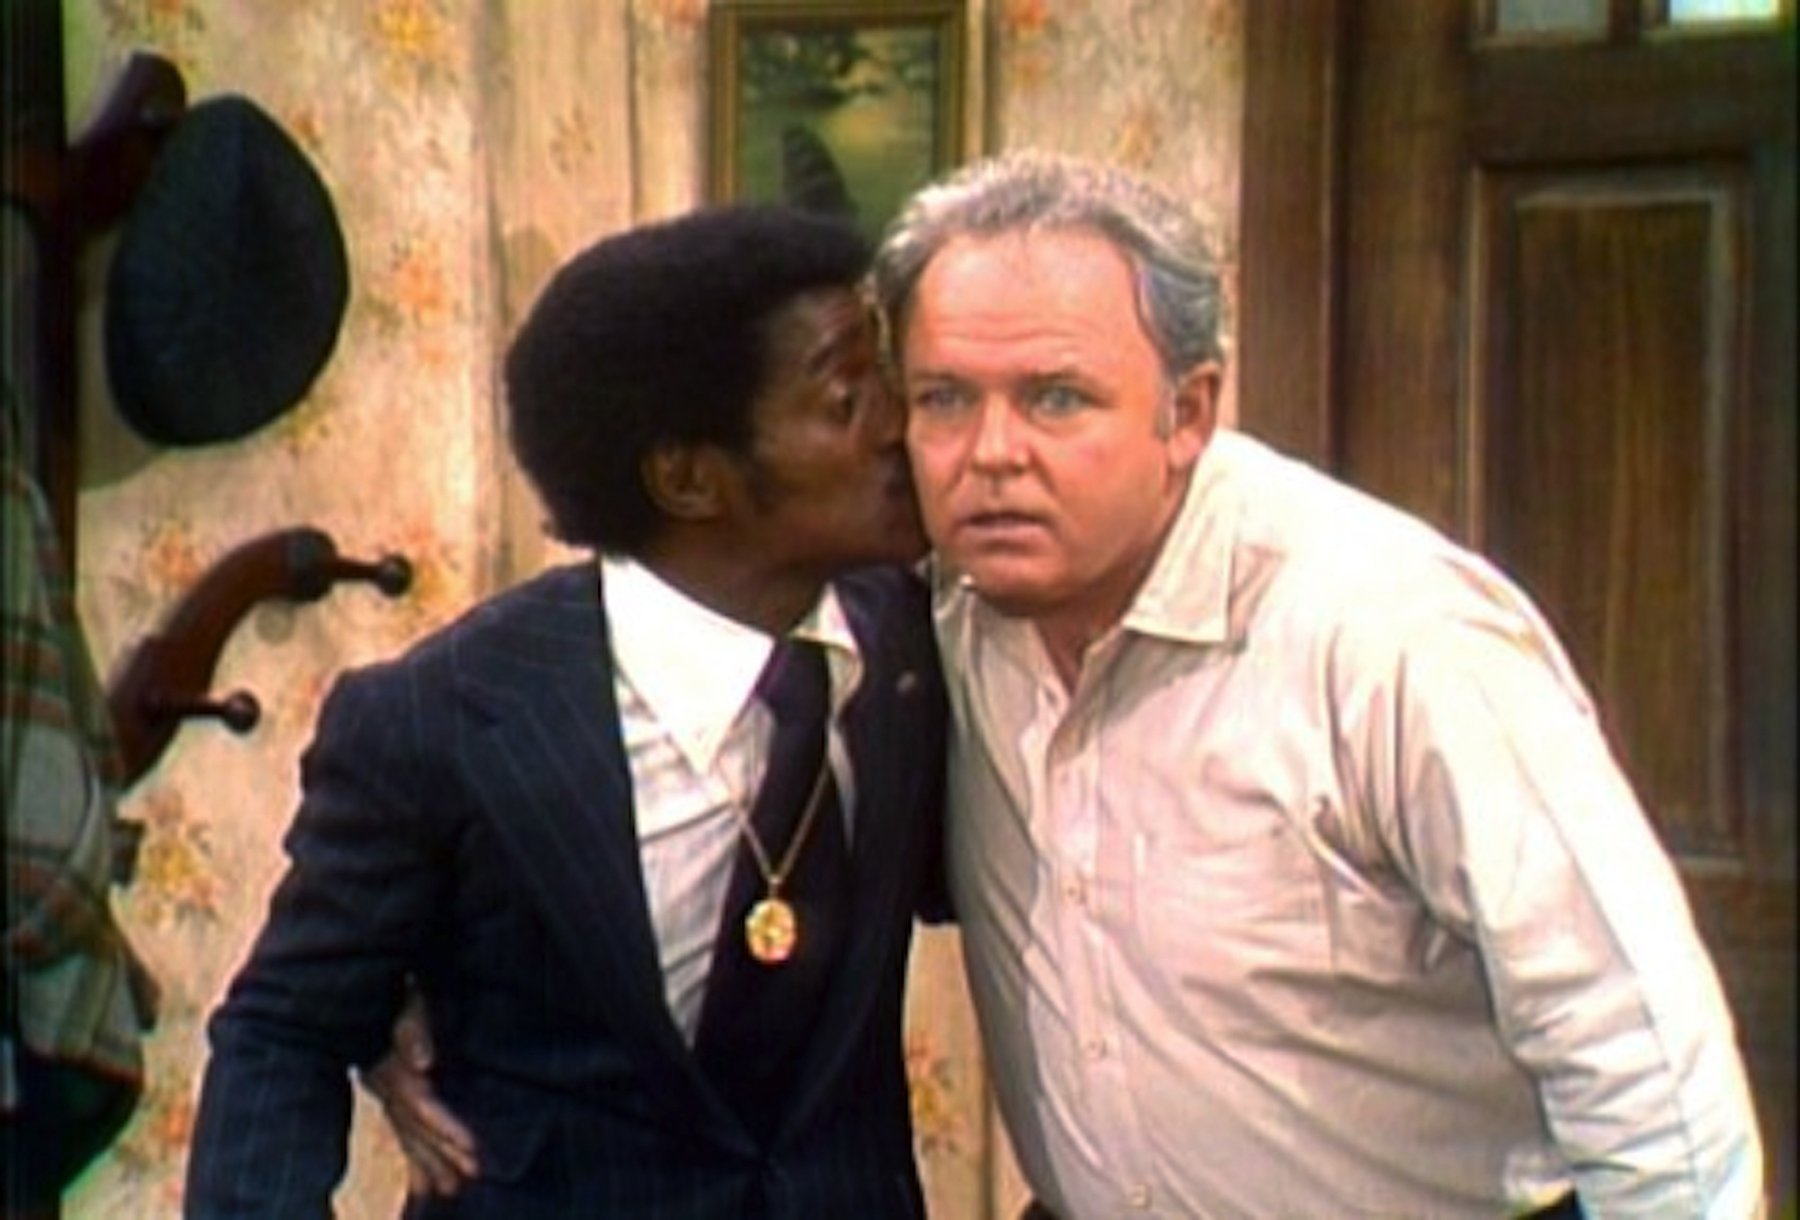 archie bunker forced people to look inside themselves and shape up